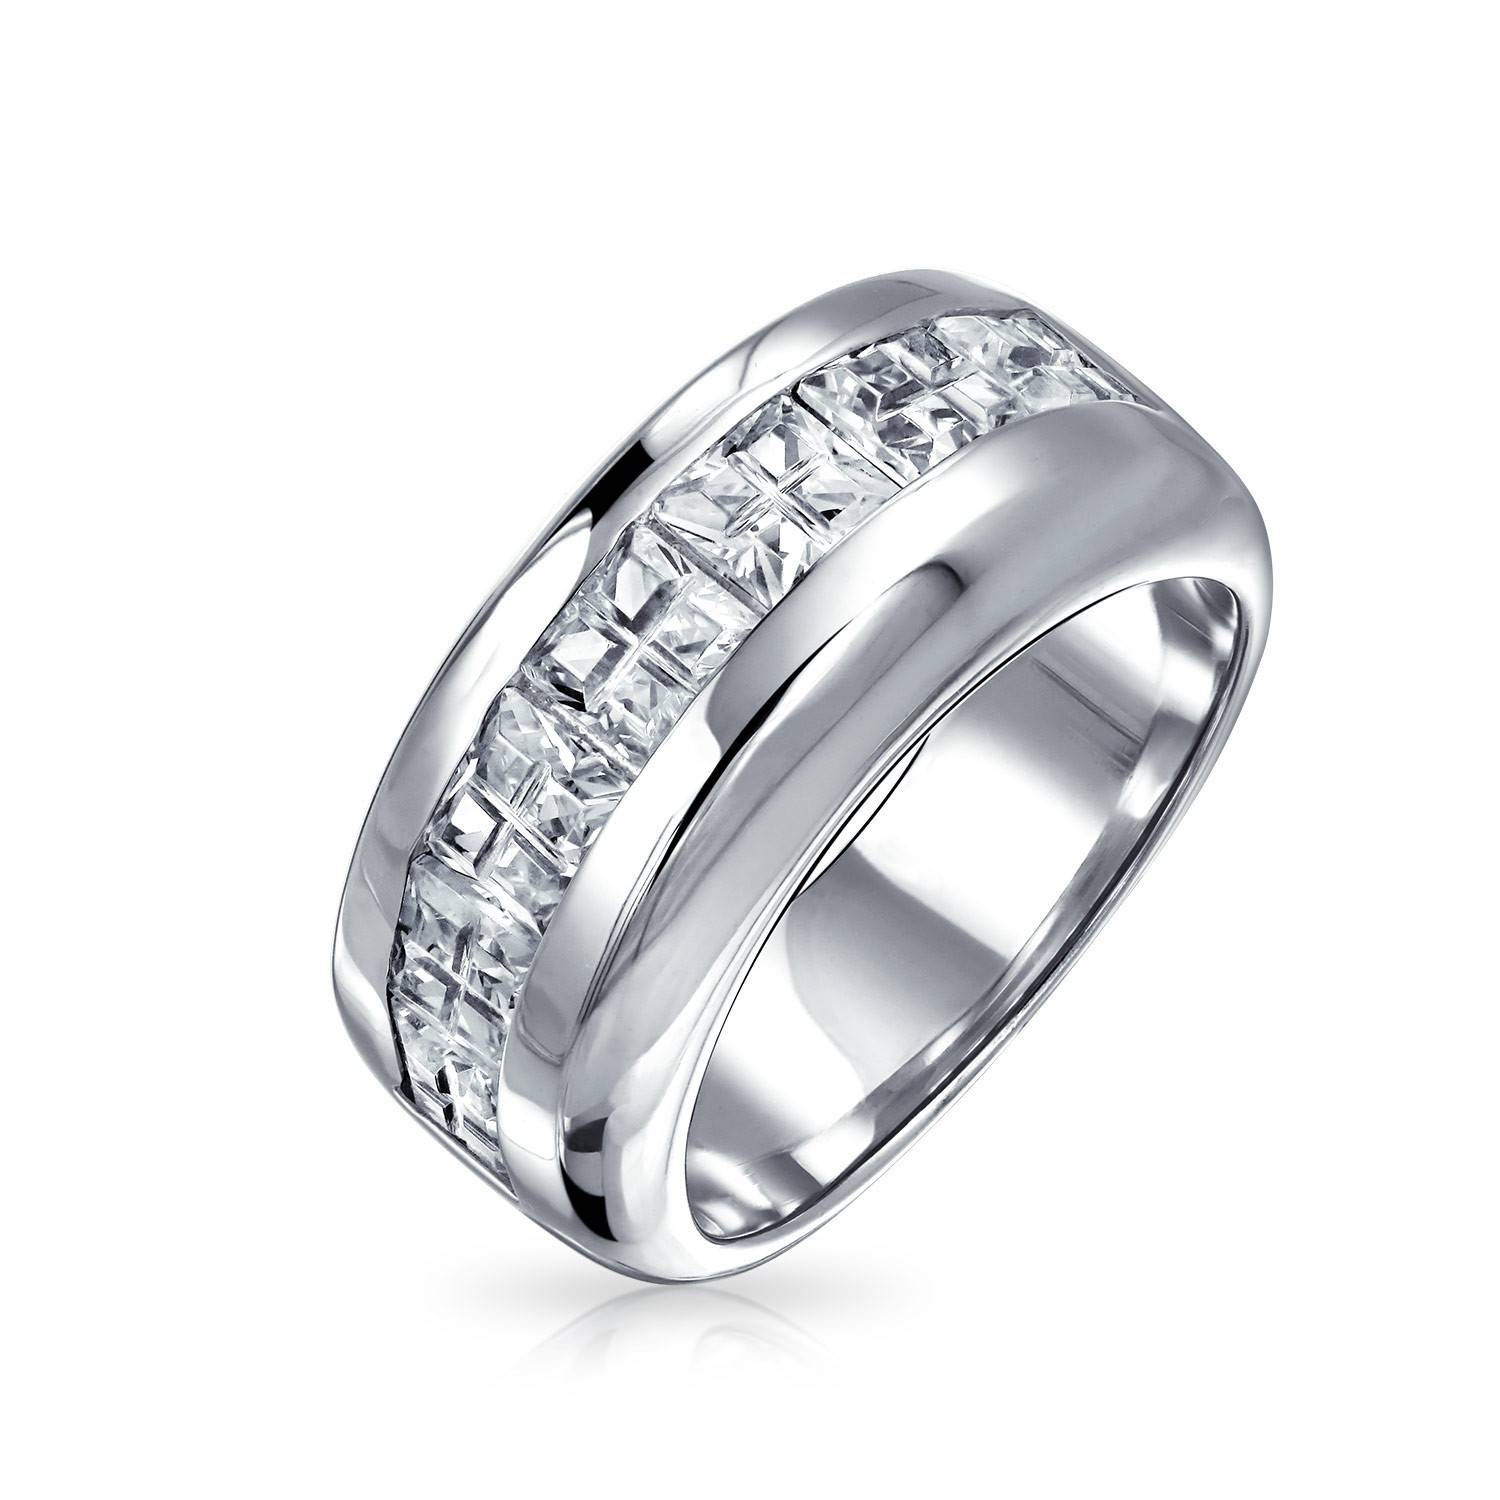 Overstock Mens Wedding Rings Luxury Sterling Silver Wedding Bands Intended For Overstock Mens Wedding Bands (View 14 of 15)